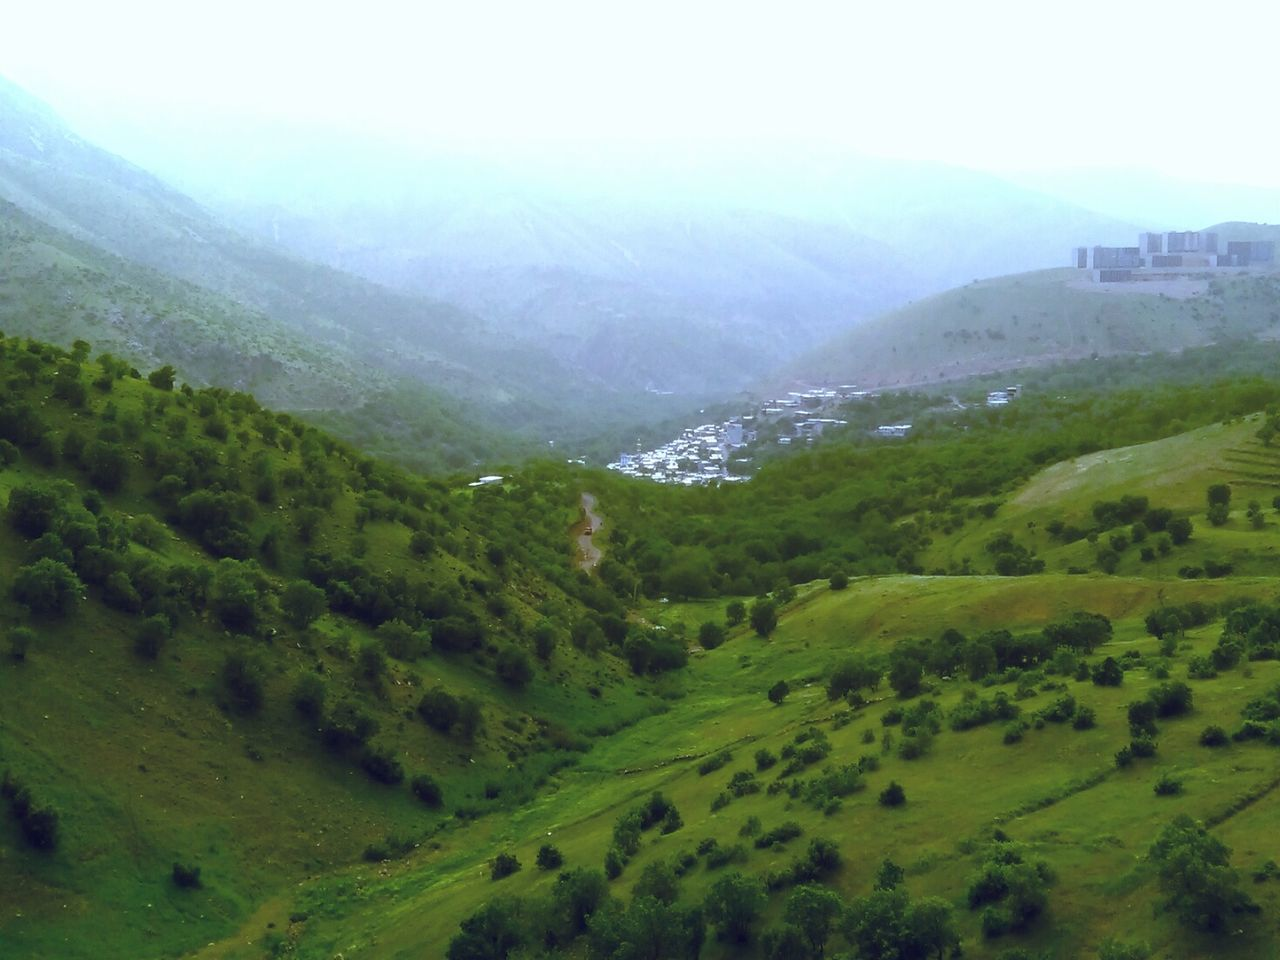 mountain, nature, landscape, beauty in nature, scenics, no people, green color, tranquil scene, tranquility, tree, day, mountain range, outdoors, fog, sky